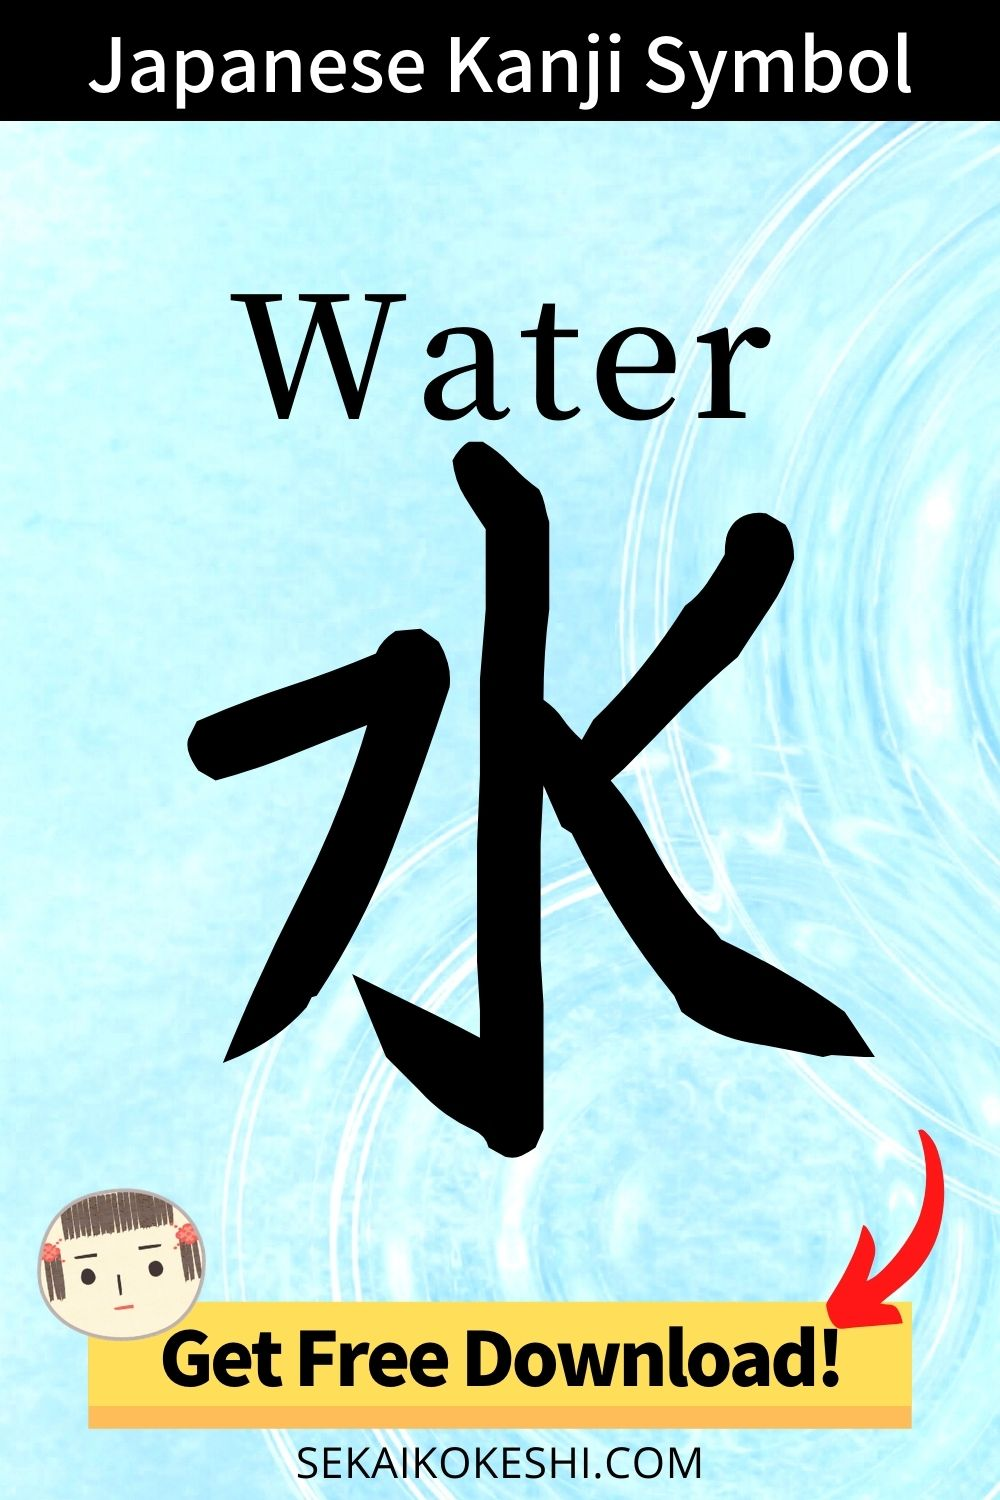 japanese kanji symbol, water, get free download!